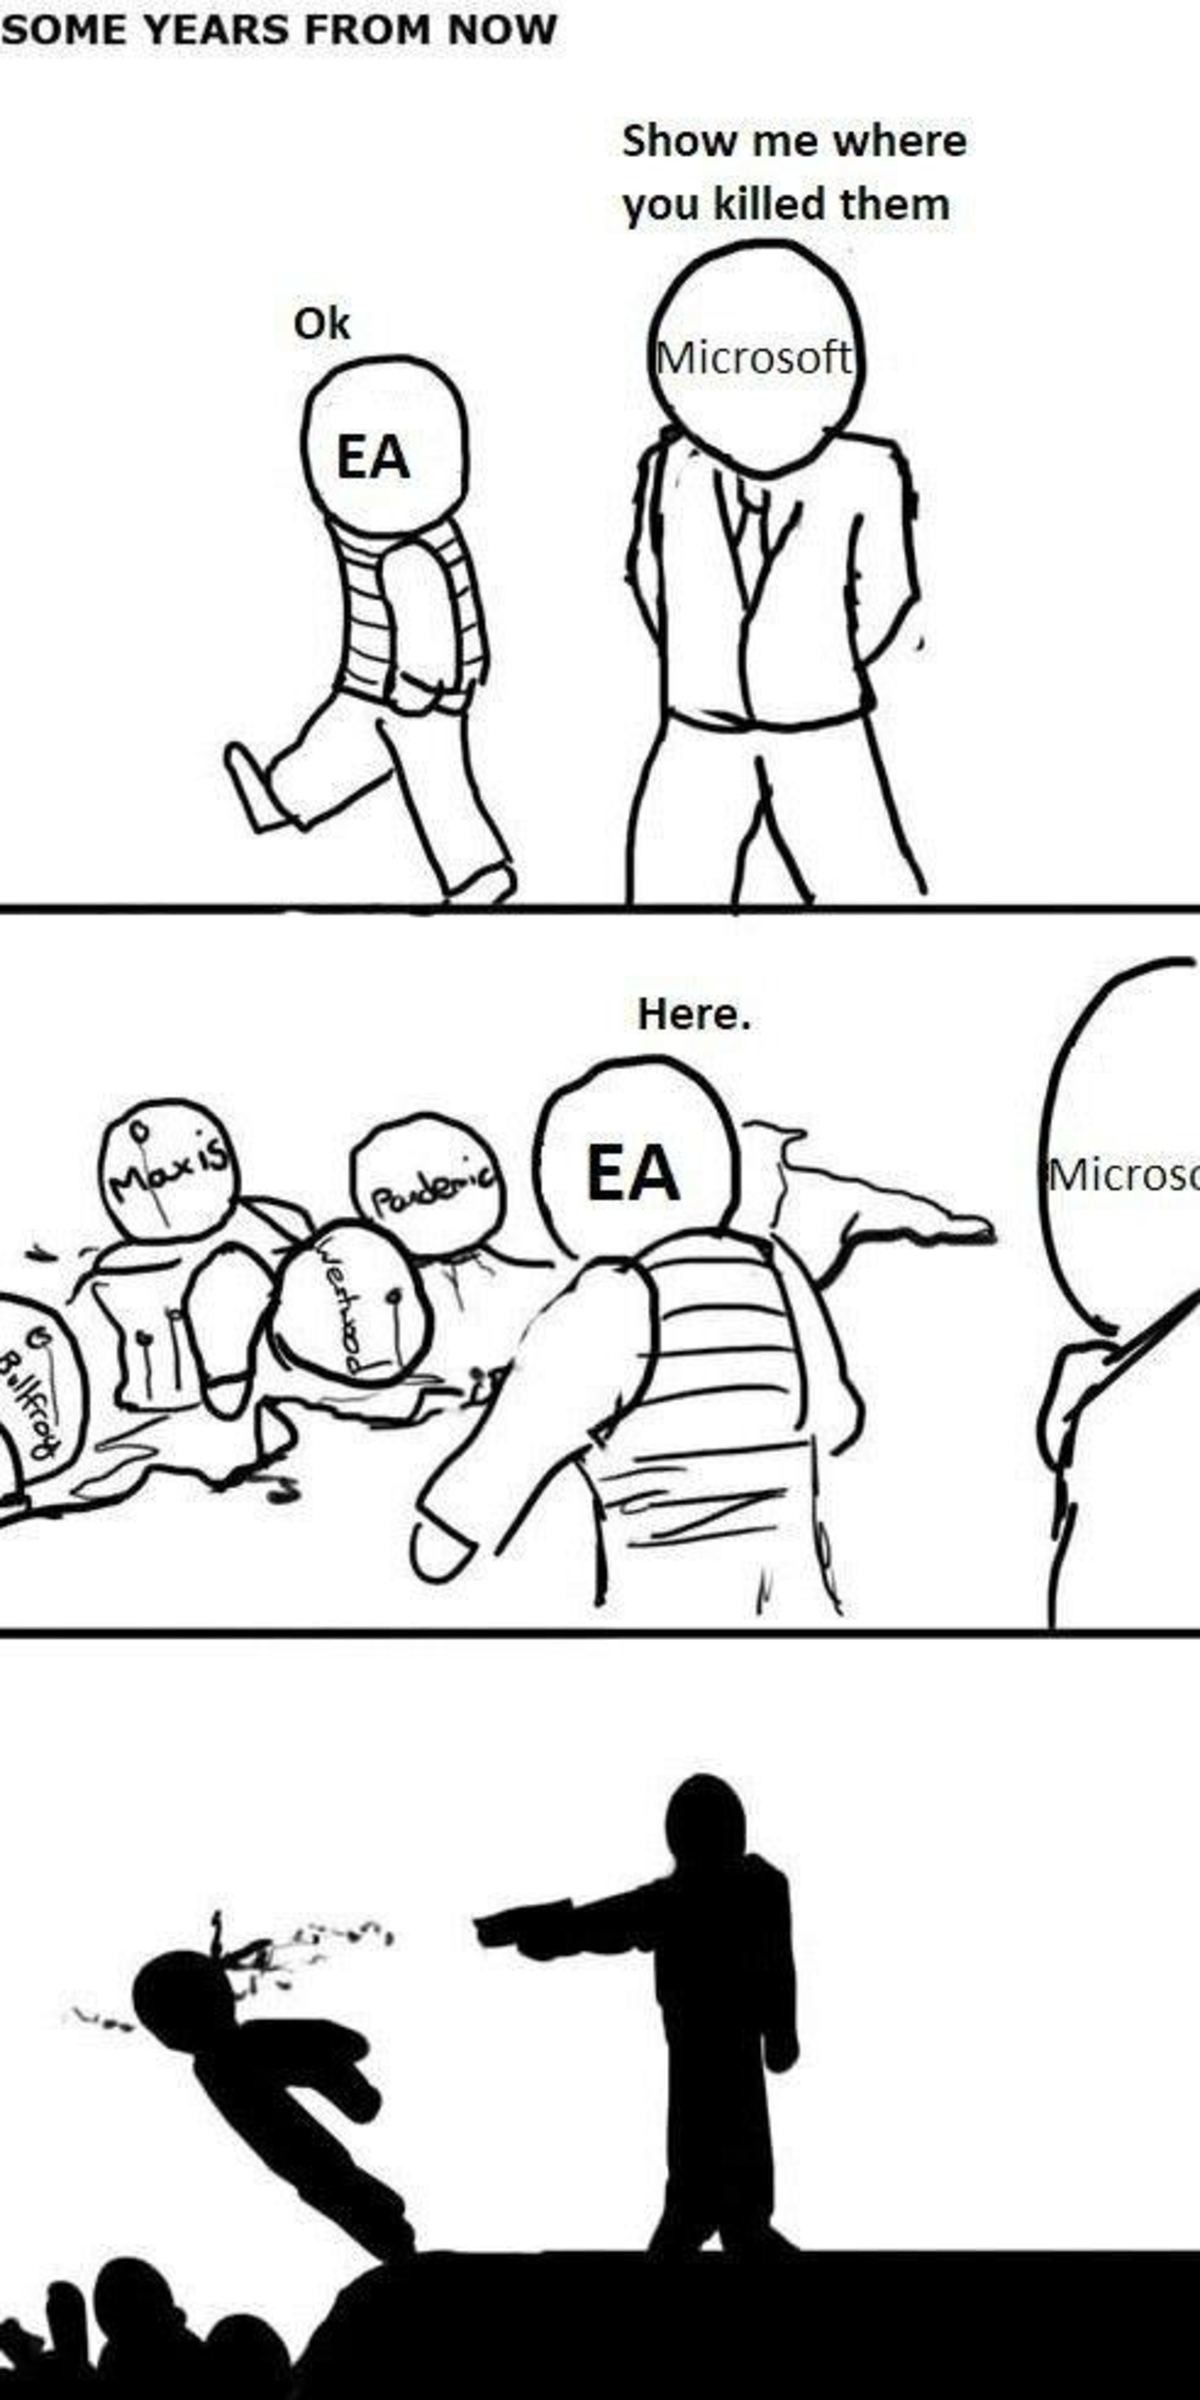 Sum day. join list: VideoGameHumor (1703 subs)Mention Clicks: 608037Msgs Sent: 5985465Mention History. SOME YEARS FROM NOW Show me where you killed them. I honestly hope Microsoft does buy EA in the near future. EA's games have a much less worse future with Microsoft than with EA itself.